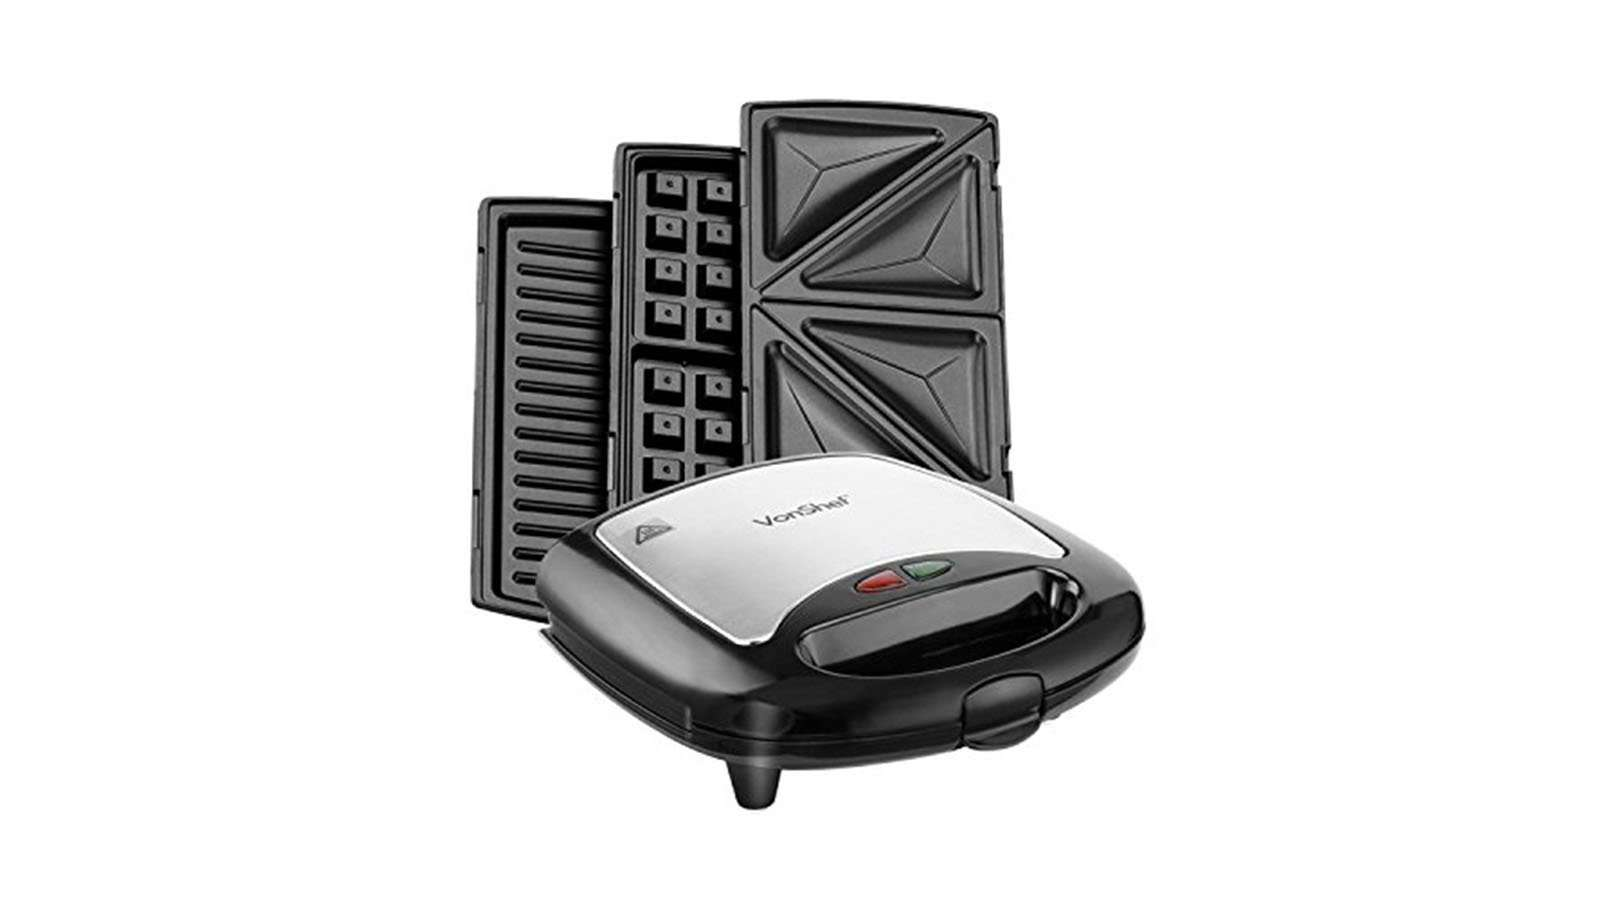 recipe: panini waffle maker removable plates [13]